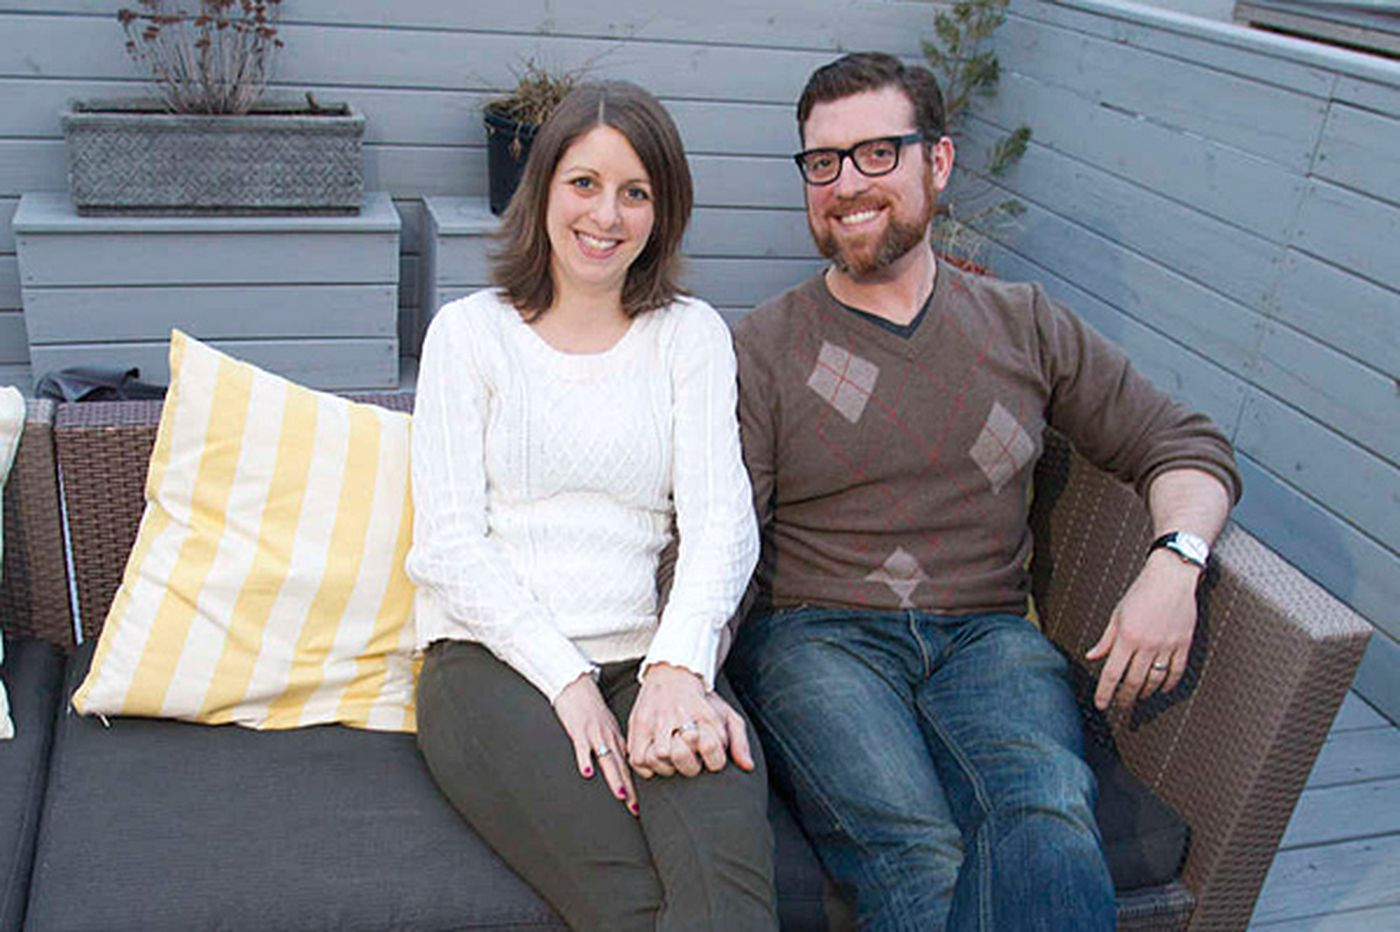 Agony of deceit for home-buying couple